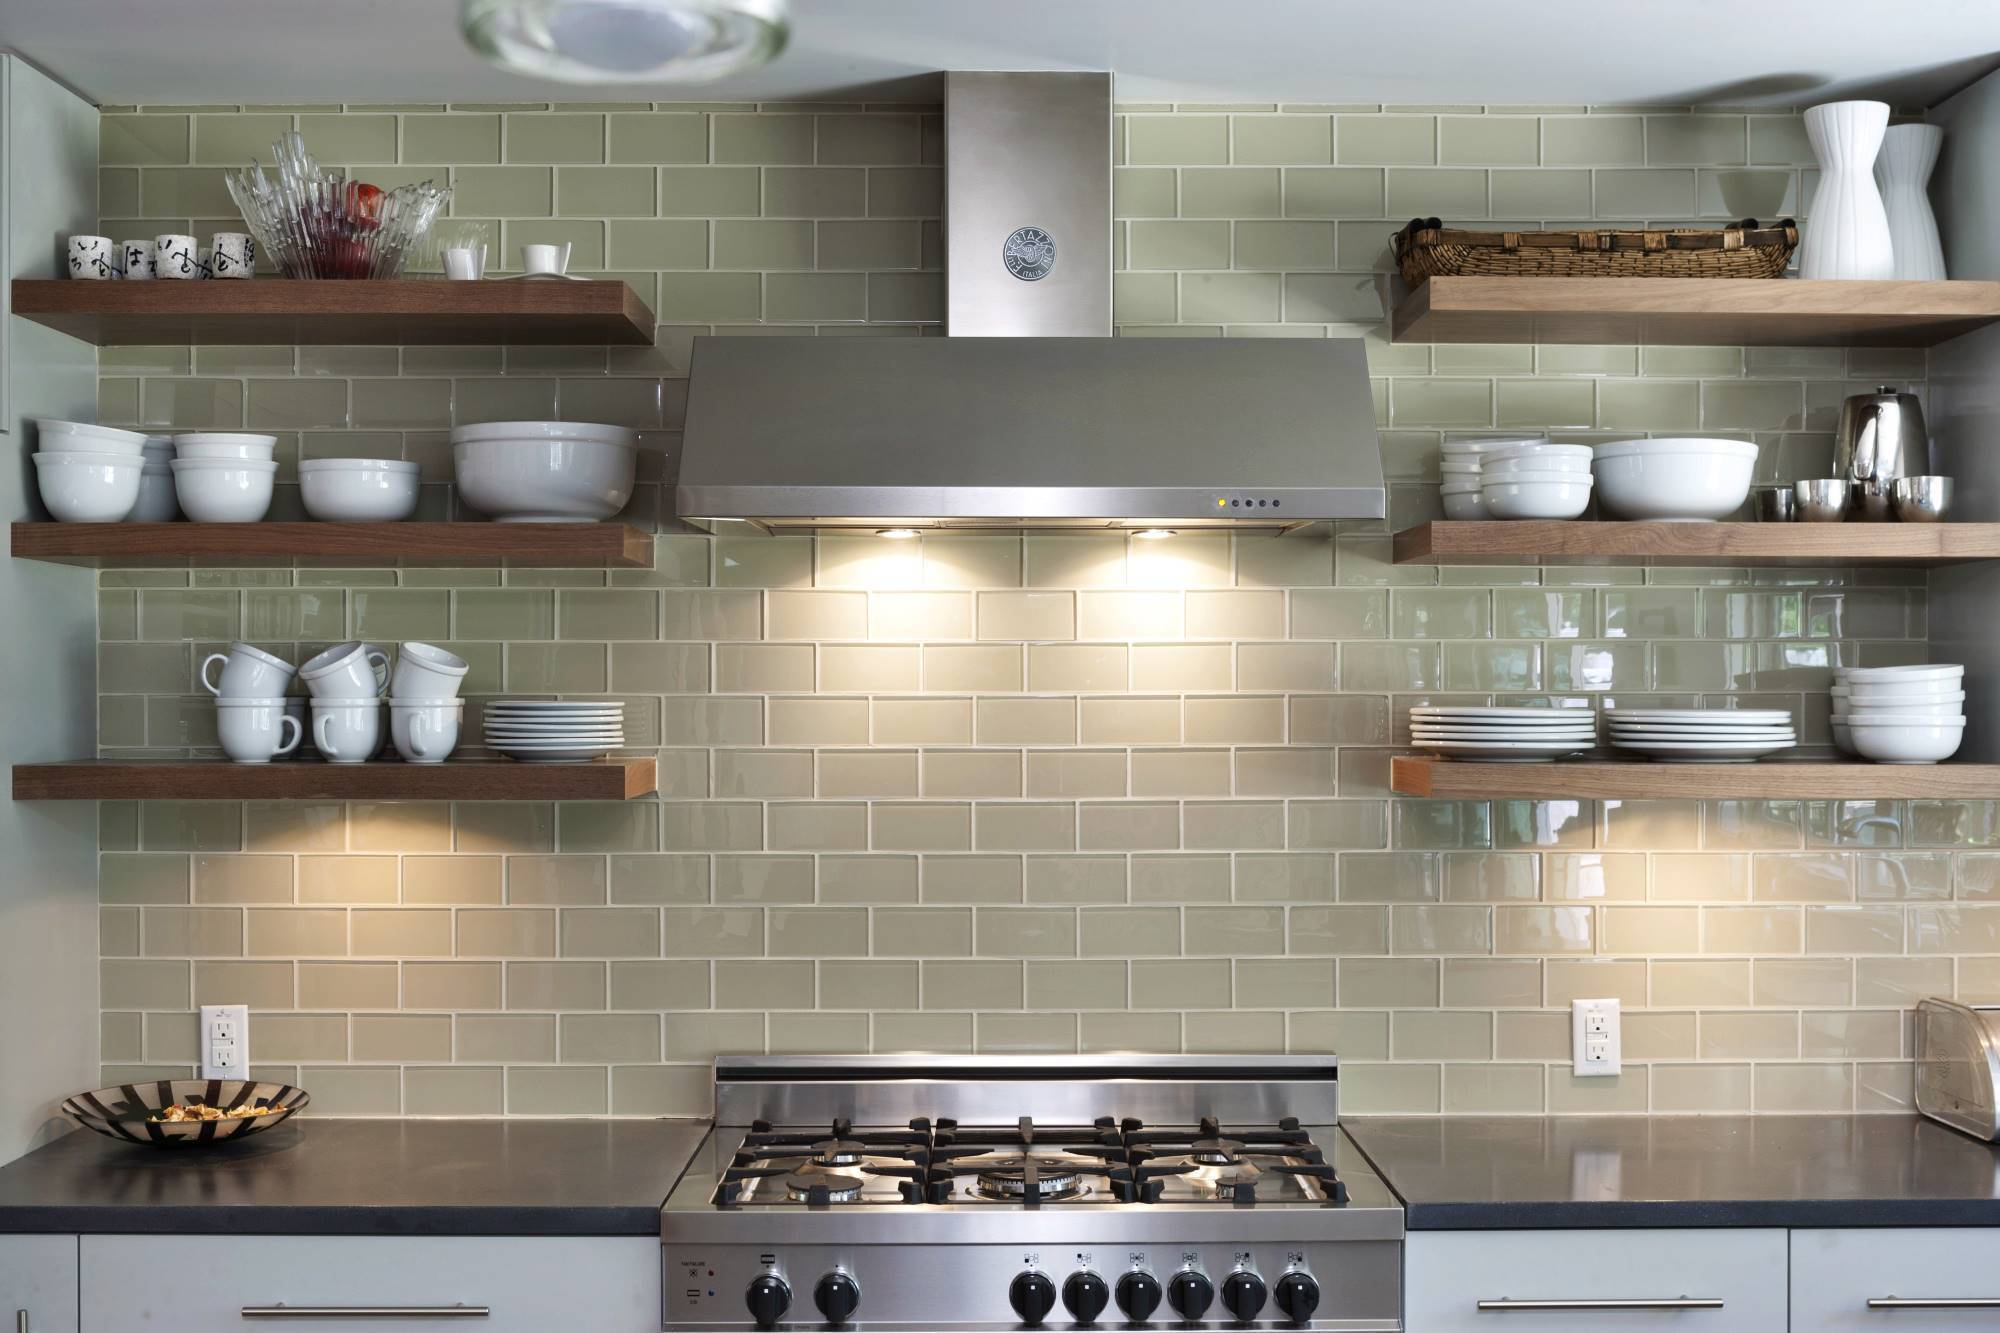 Bright Lighting On Grey Kitchen Tile Ideas And Glossy Range Hood Near Oak Wall Shelves Decorative Backsplash